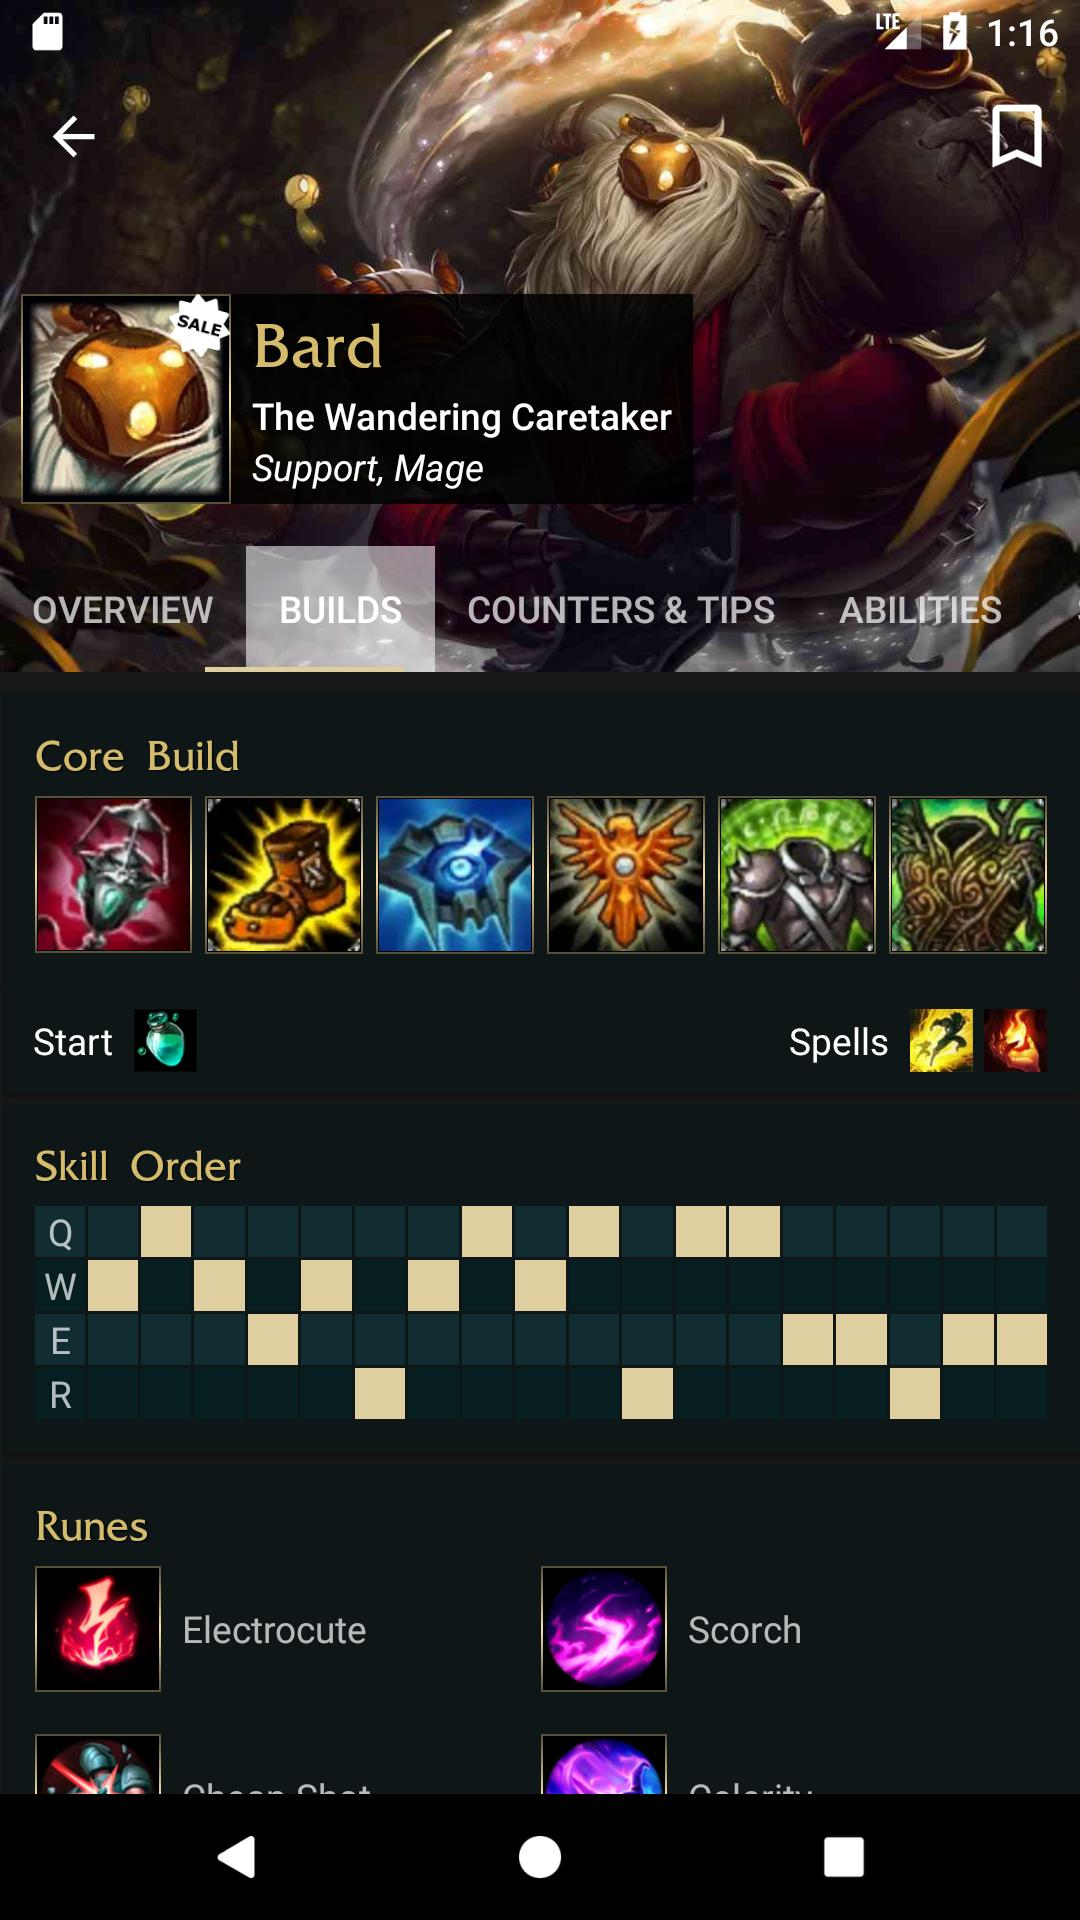 Summoner's Companion for LoL for Android - APK Download